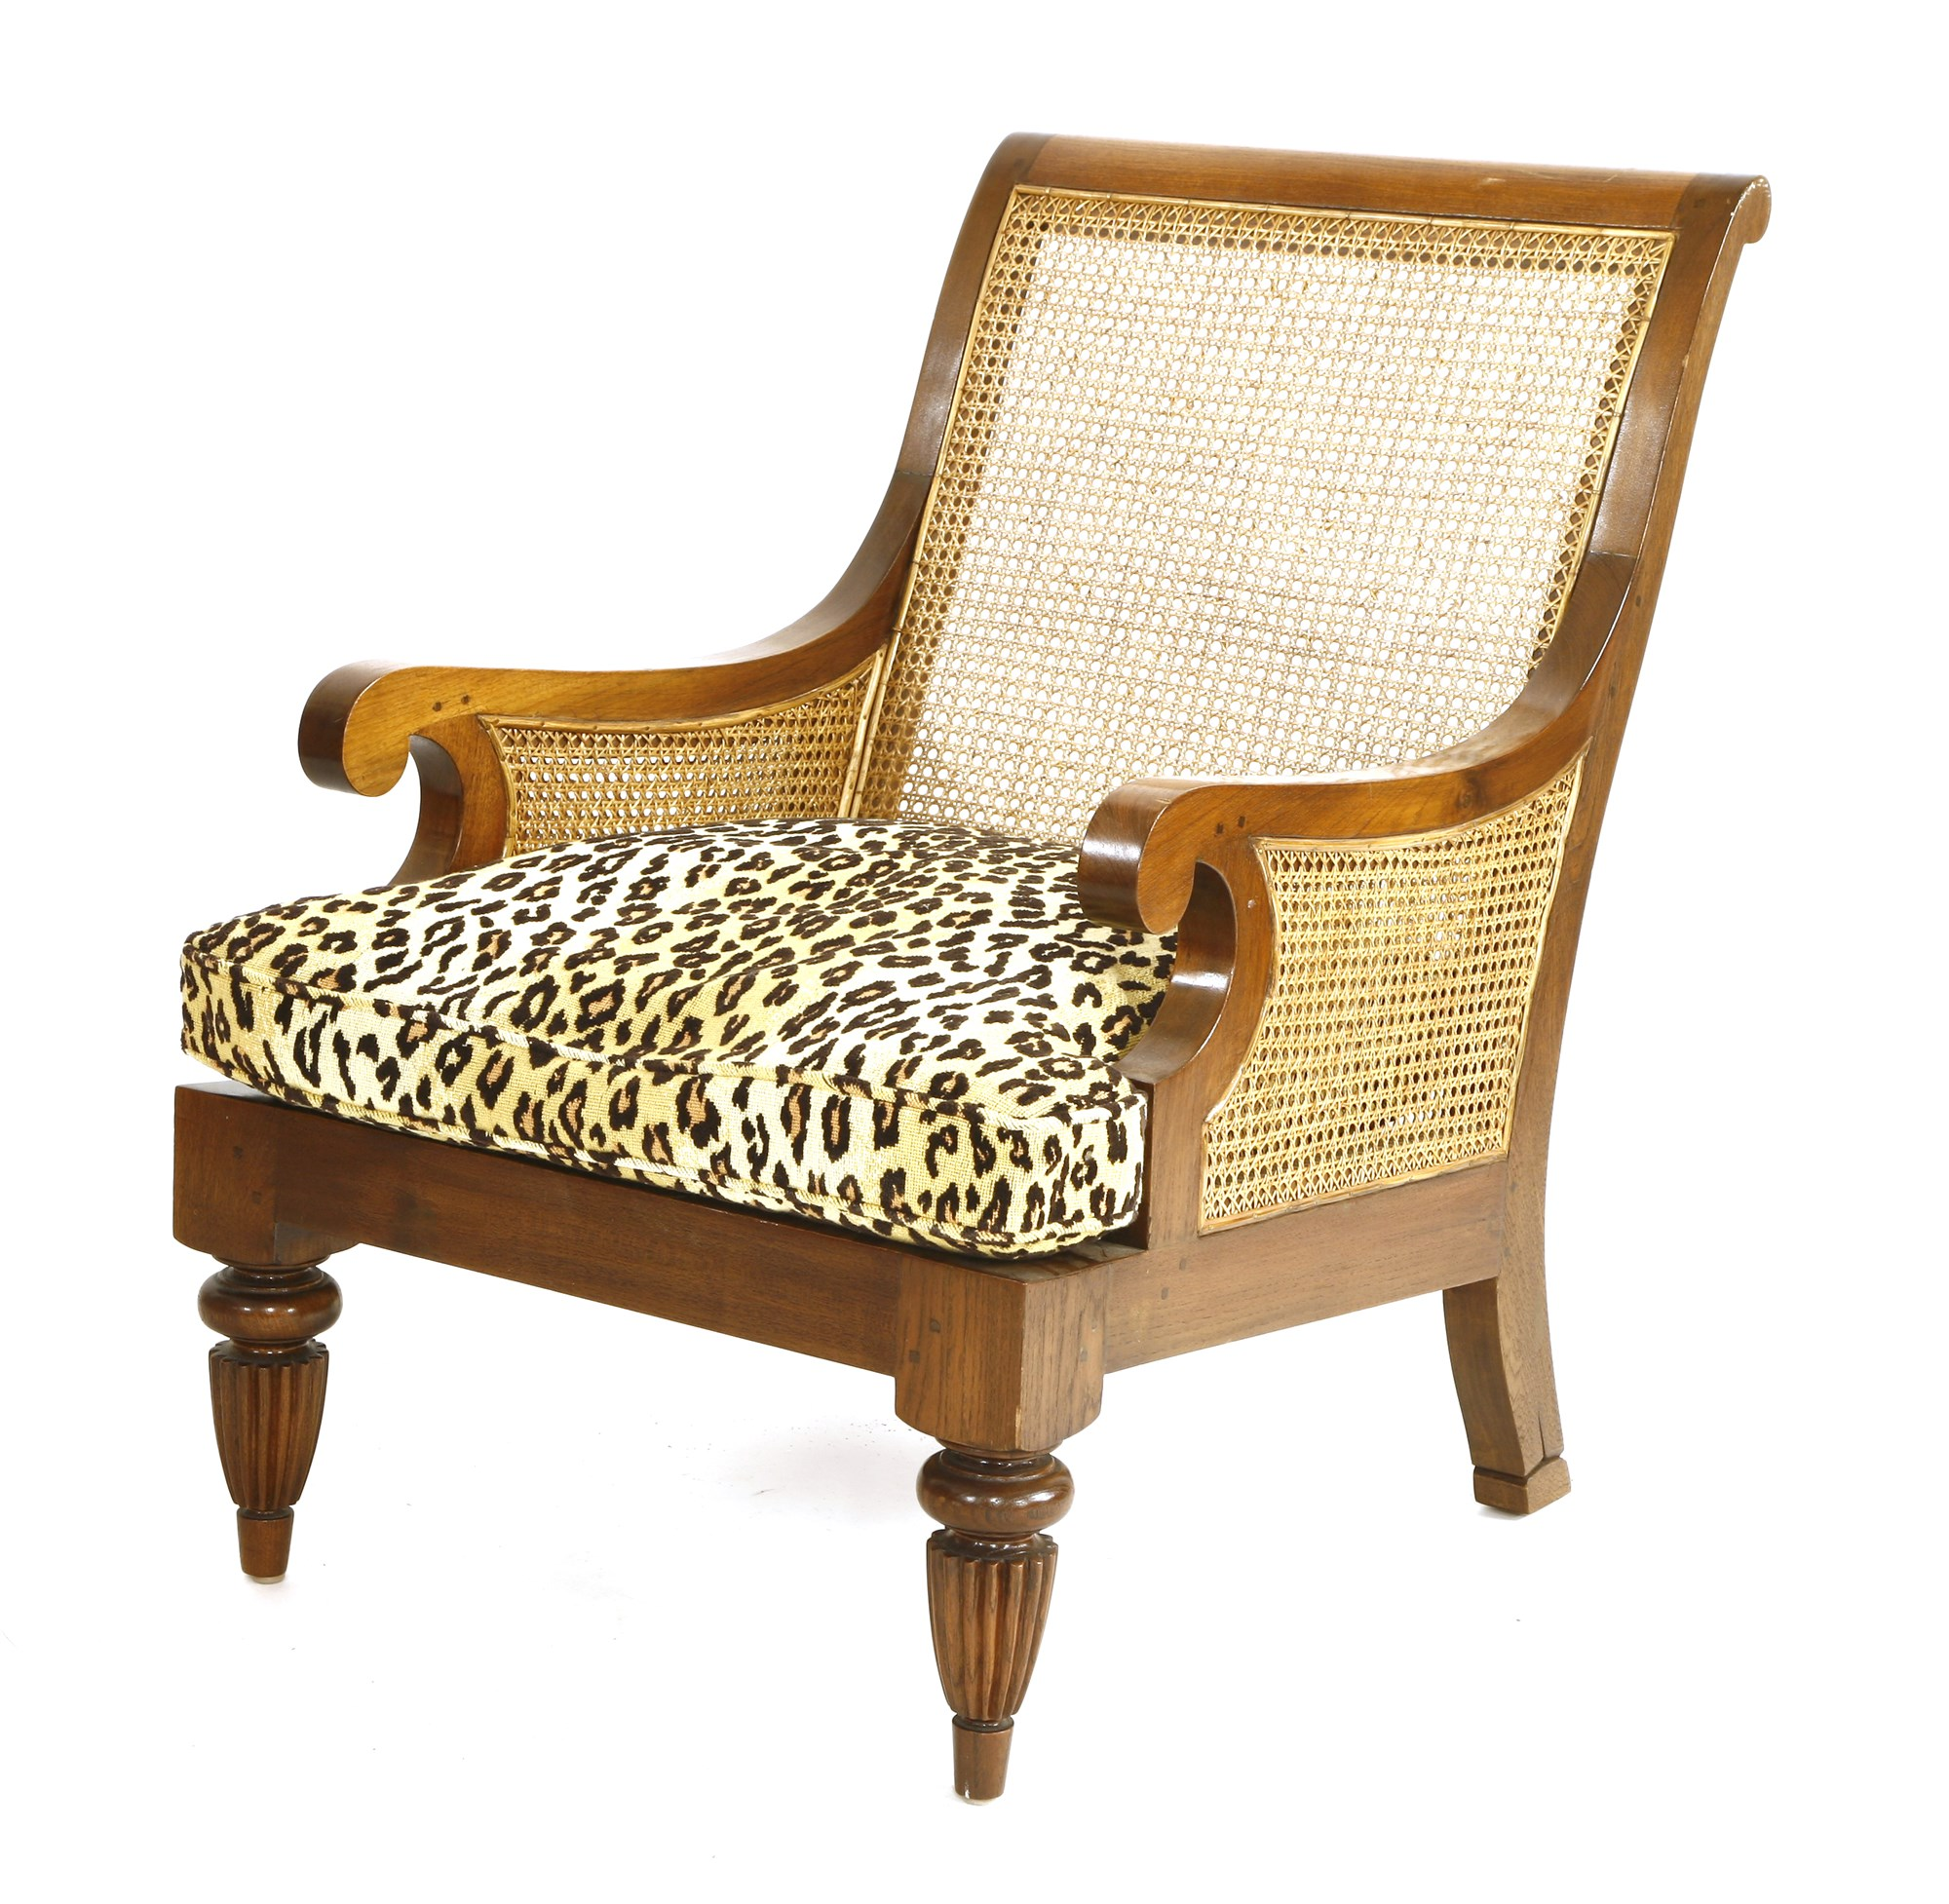 Sir Rod Stewart's Leopard Armchair at Sworders Fine Art Auctioneers